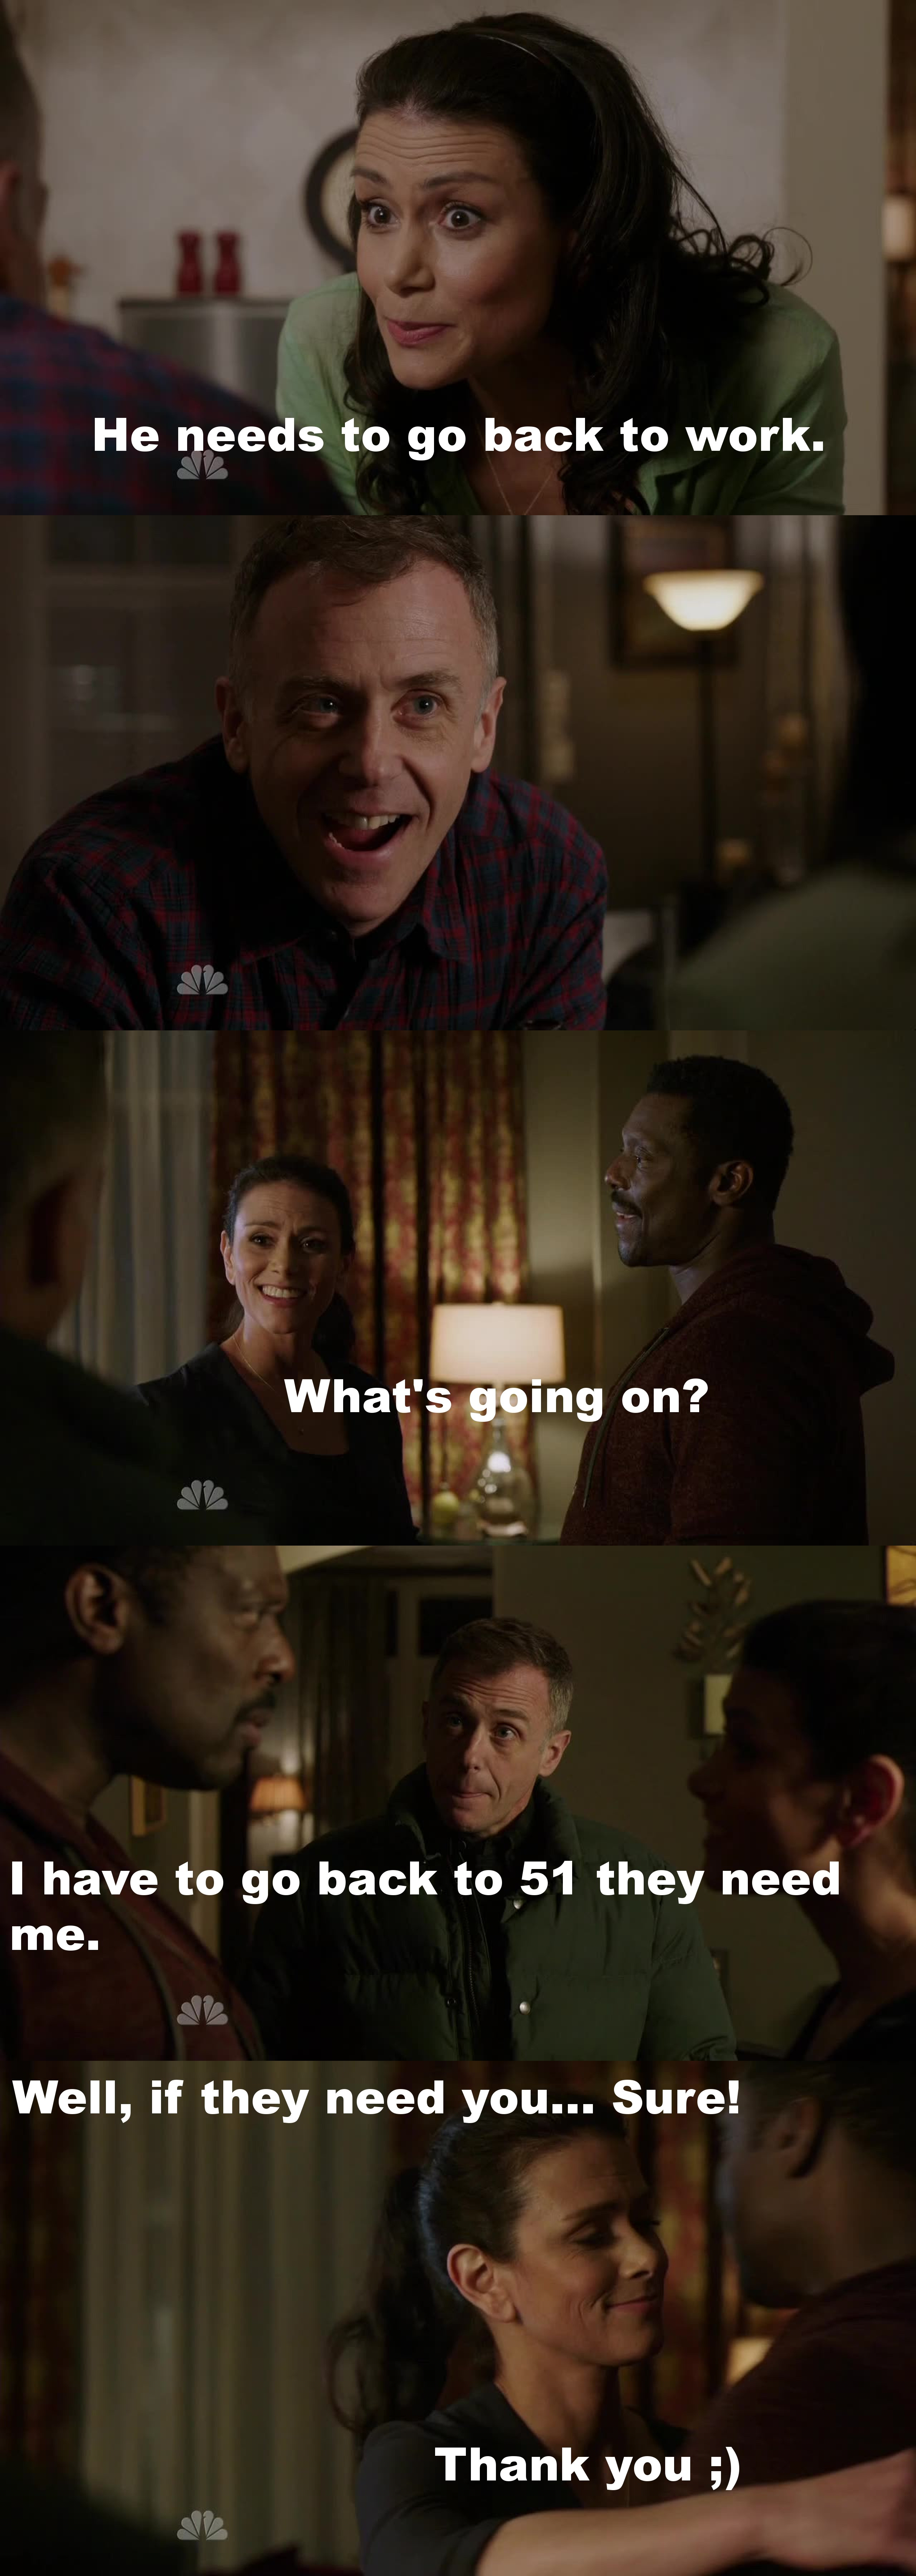 Donna cracked me up in that episode xD Of course Boden needs to go back to 51. He is doing an excellent job at 51 and also with his son. He needs both. Anyway, Boden and Donna are adorable. I love them together!!!